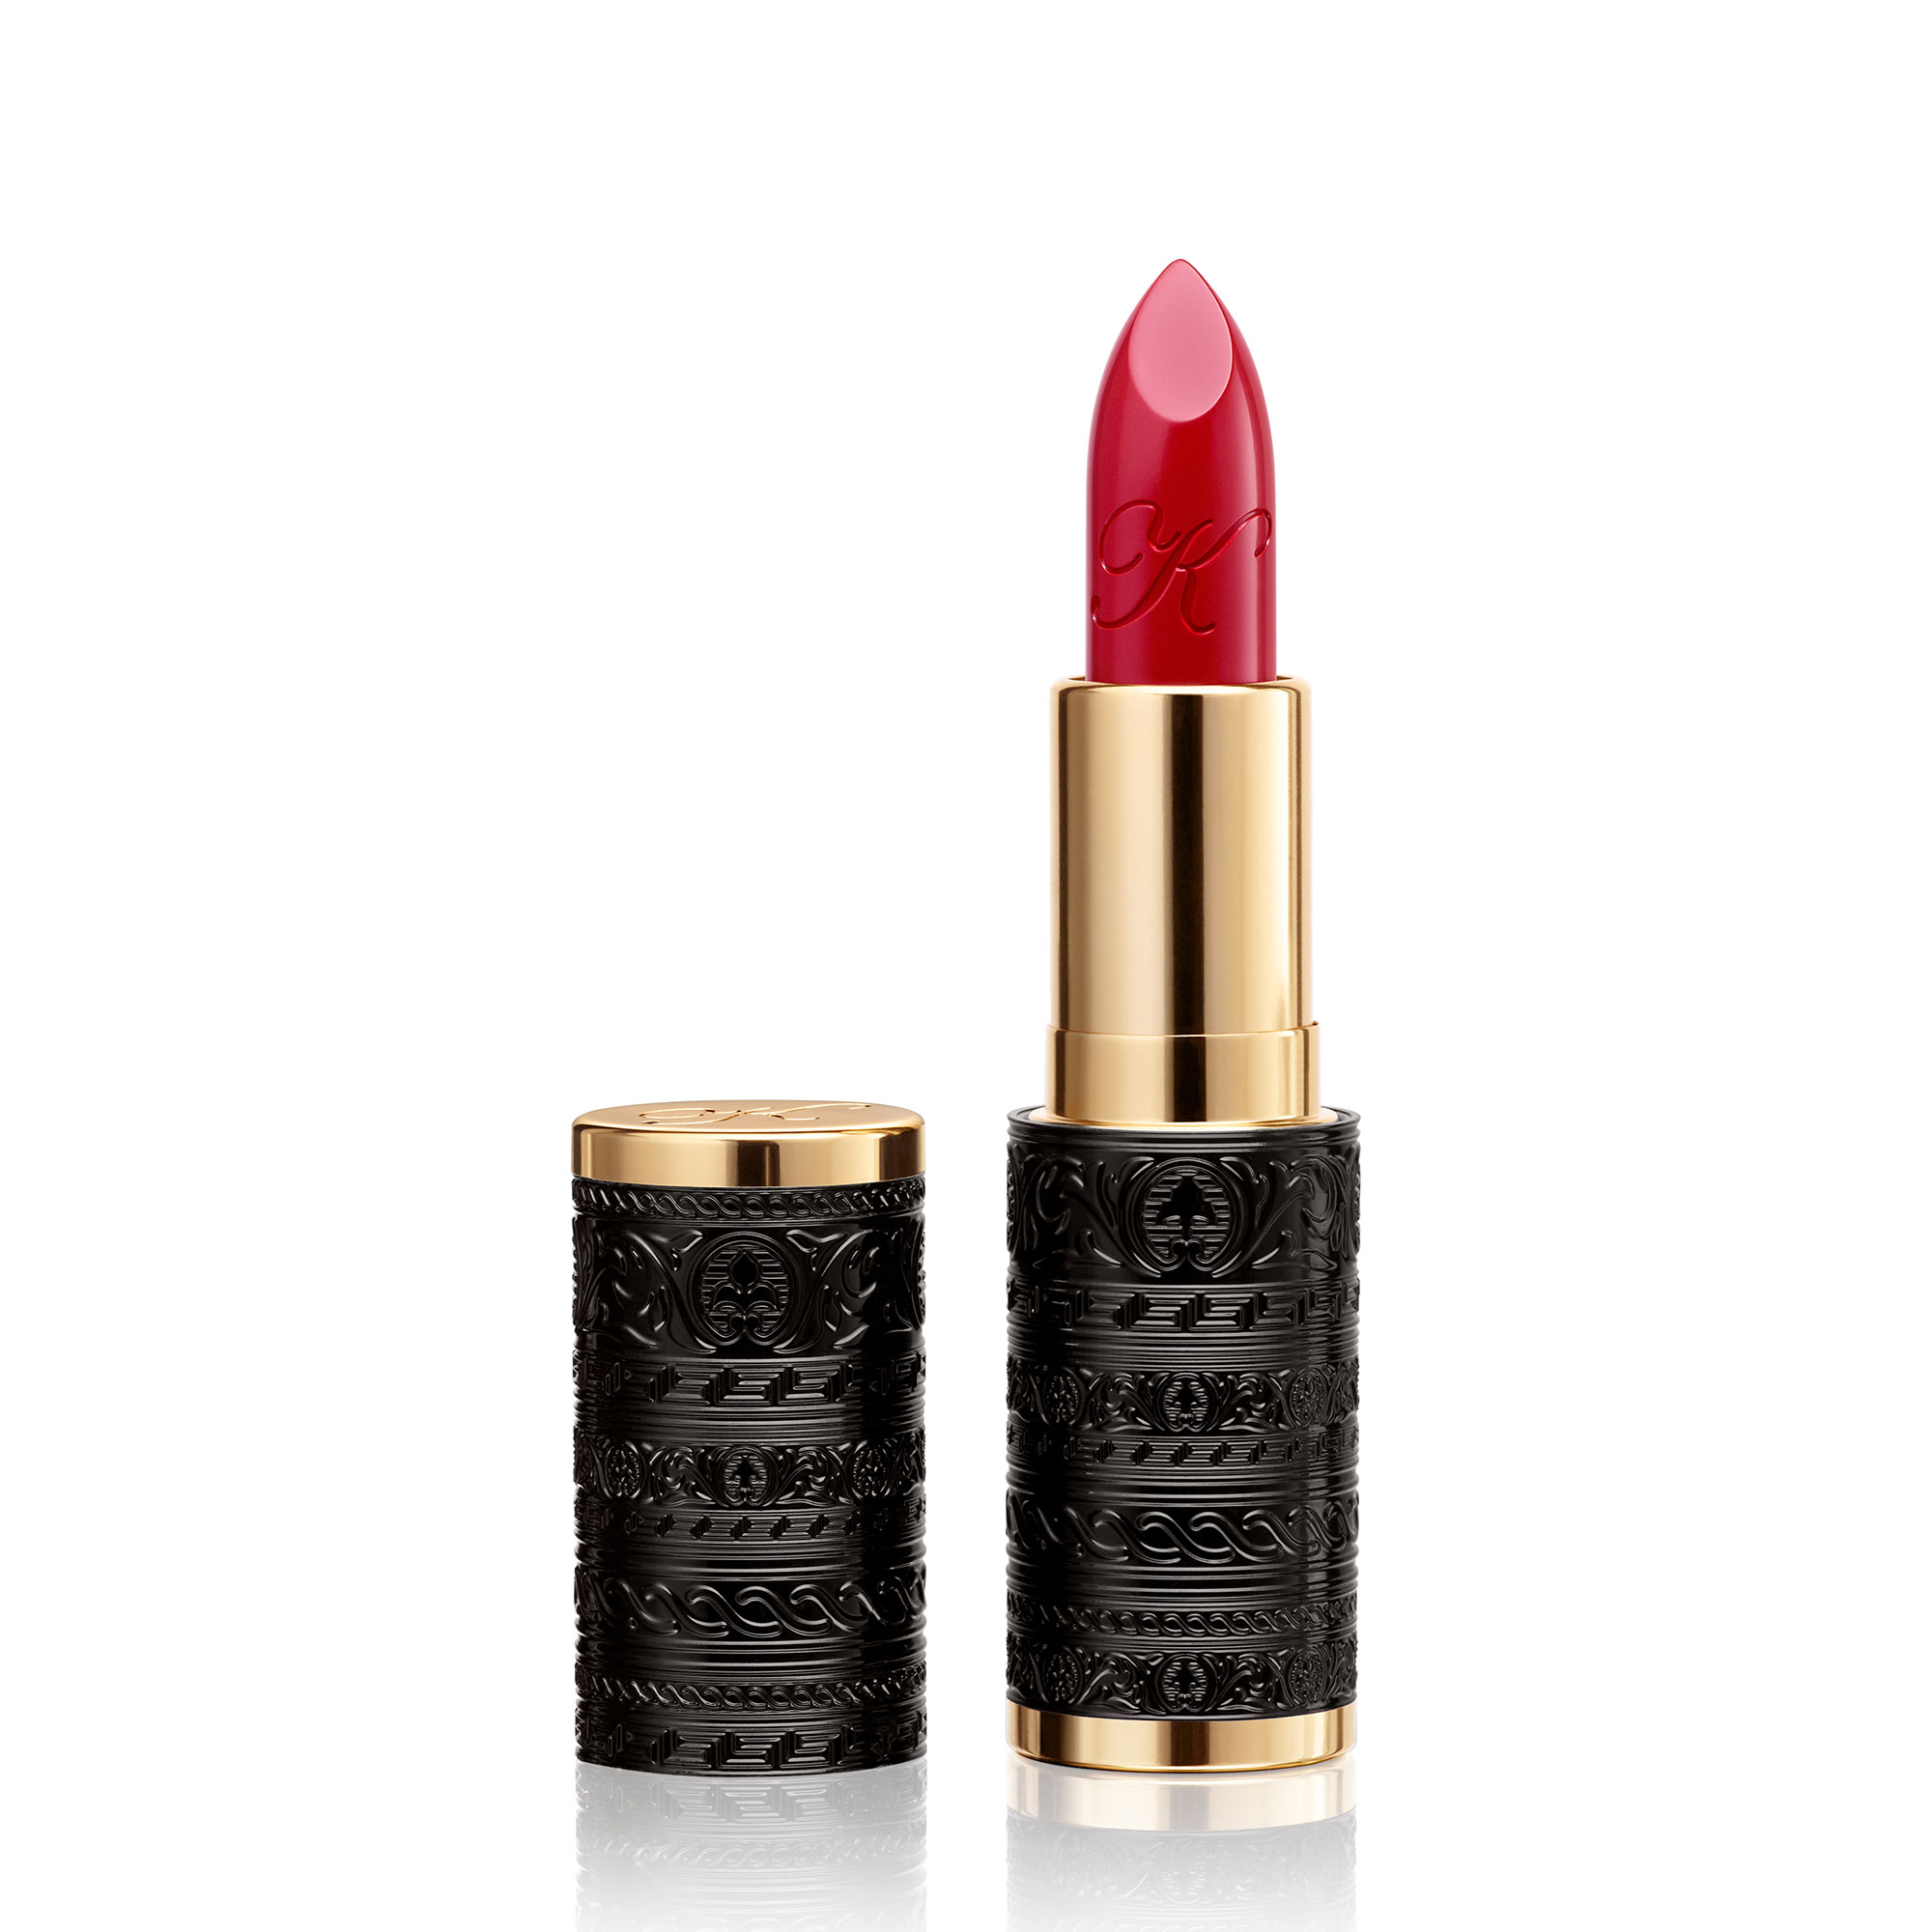 Valentine's Day Gift Guide 2019: Beauty and Fashion Ideas for the Lady in Your Life - Known for his cheekily named fragrances ( Voulez-Vous Coucher Avec Moi , anyone?), the French perfumer has entered the makeup game with a collection of red lipsticks that are so chic, she'll be looking for any excuse to reapply. $55, saks.com